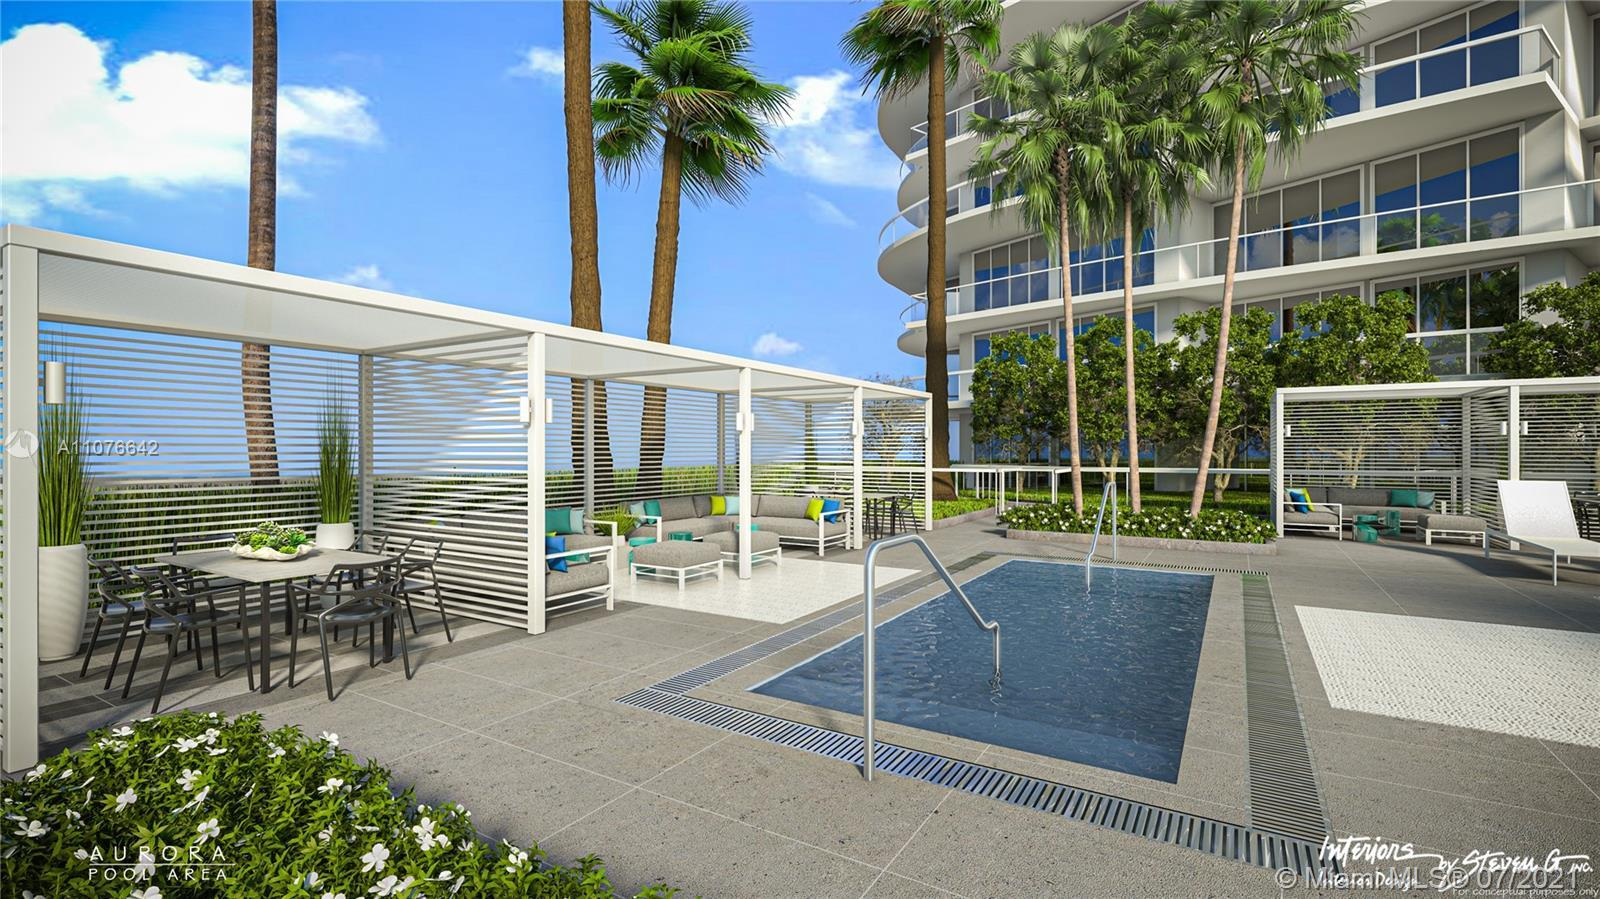 NEW CONSTRUCTION! Move in by Q1 2022. This residence offers a 372 sq.ft. private terrace, 10' ceili